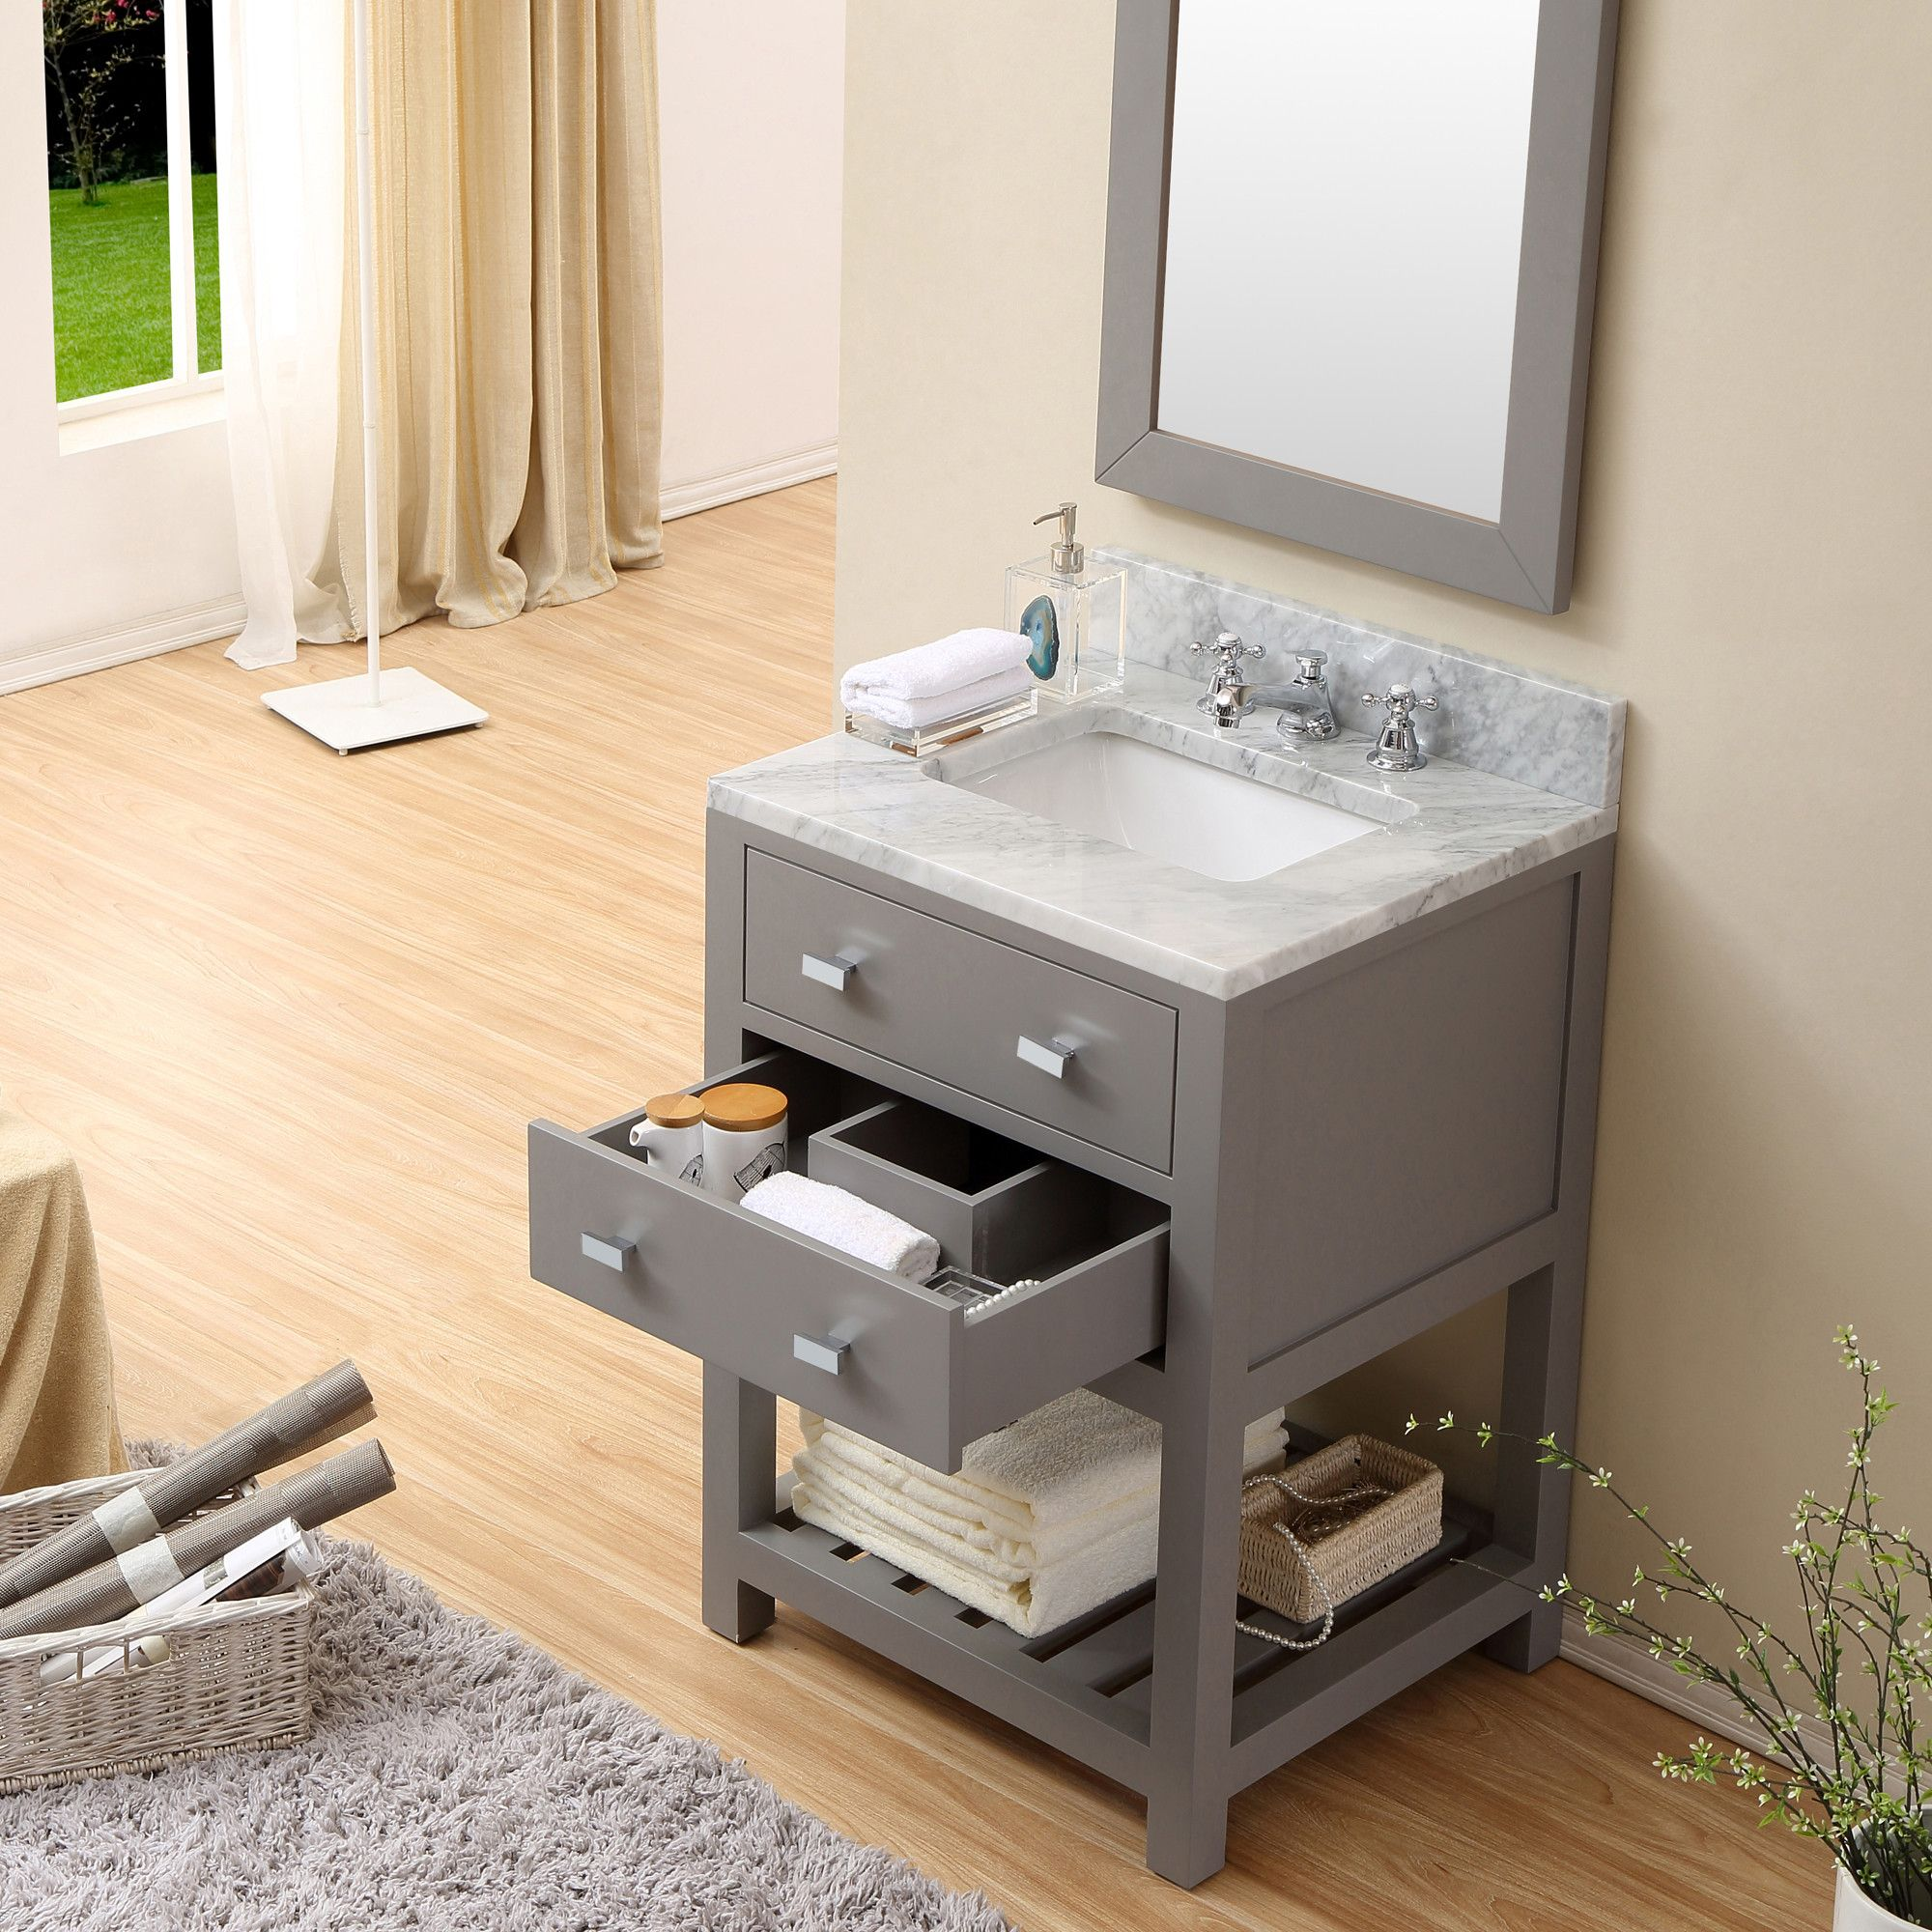 with inch vanity oak vanities white ideas wash decor modern bathroom medicine gray elegant stylish westwood prepare drawers cabinet